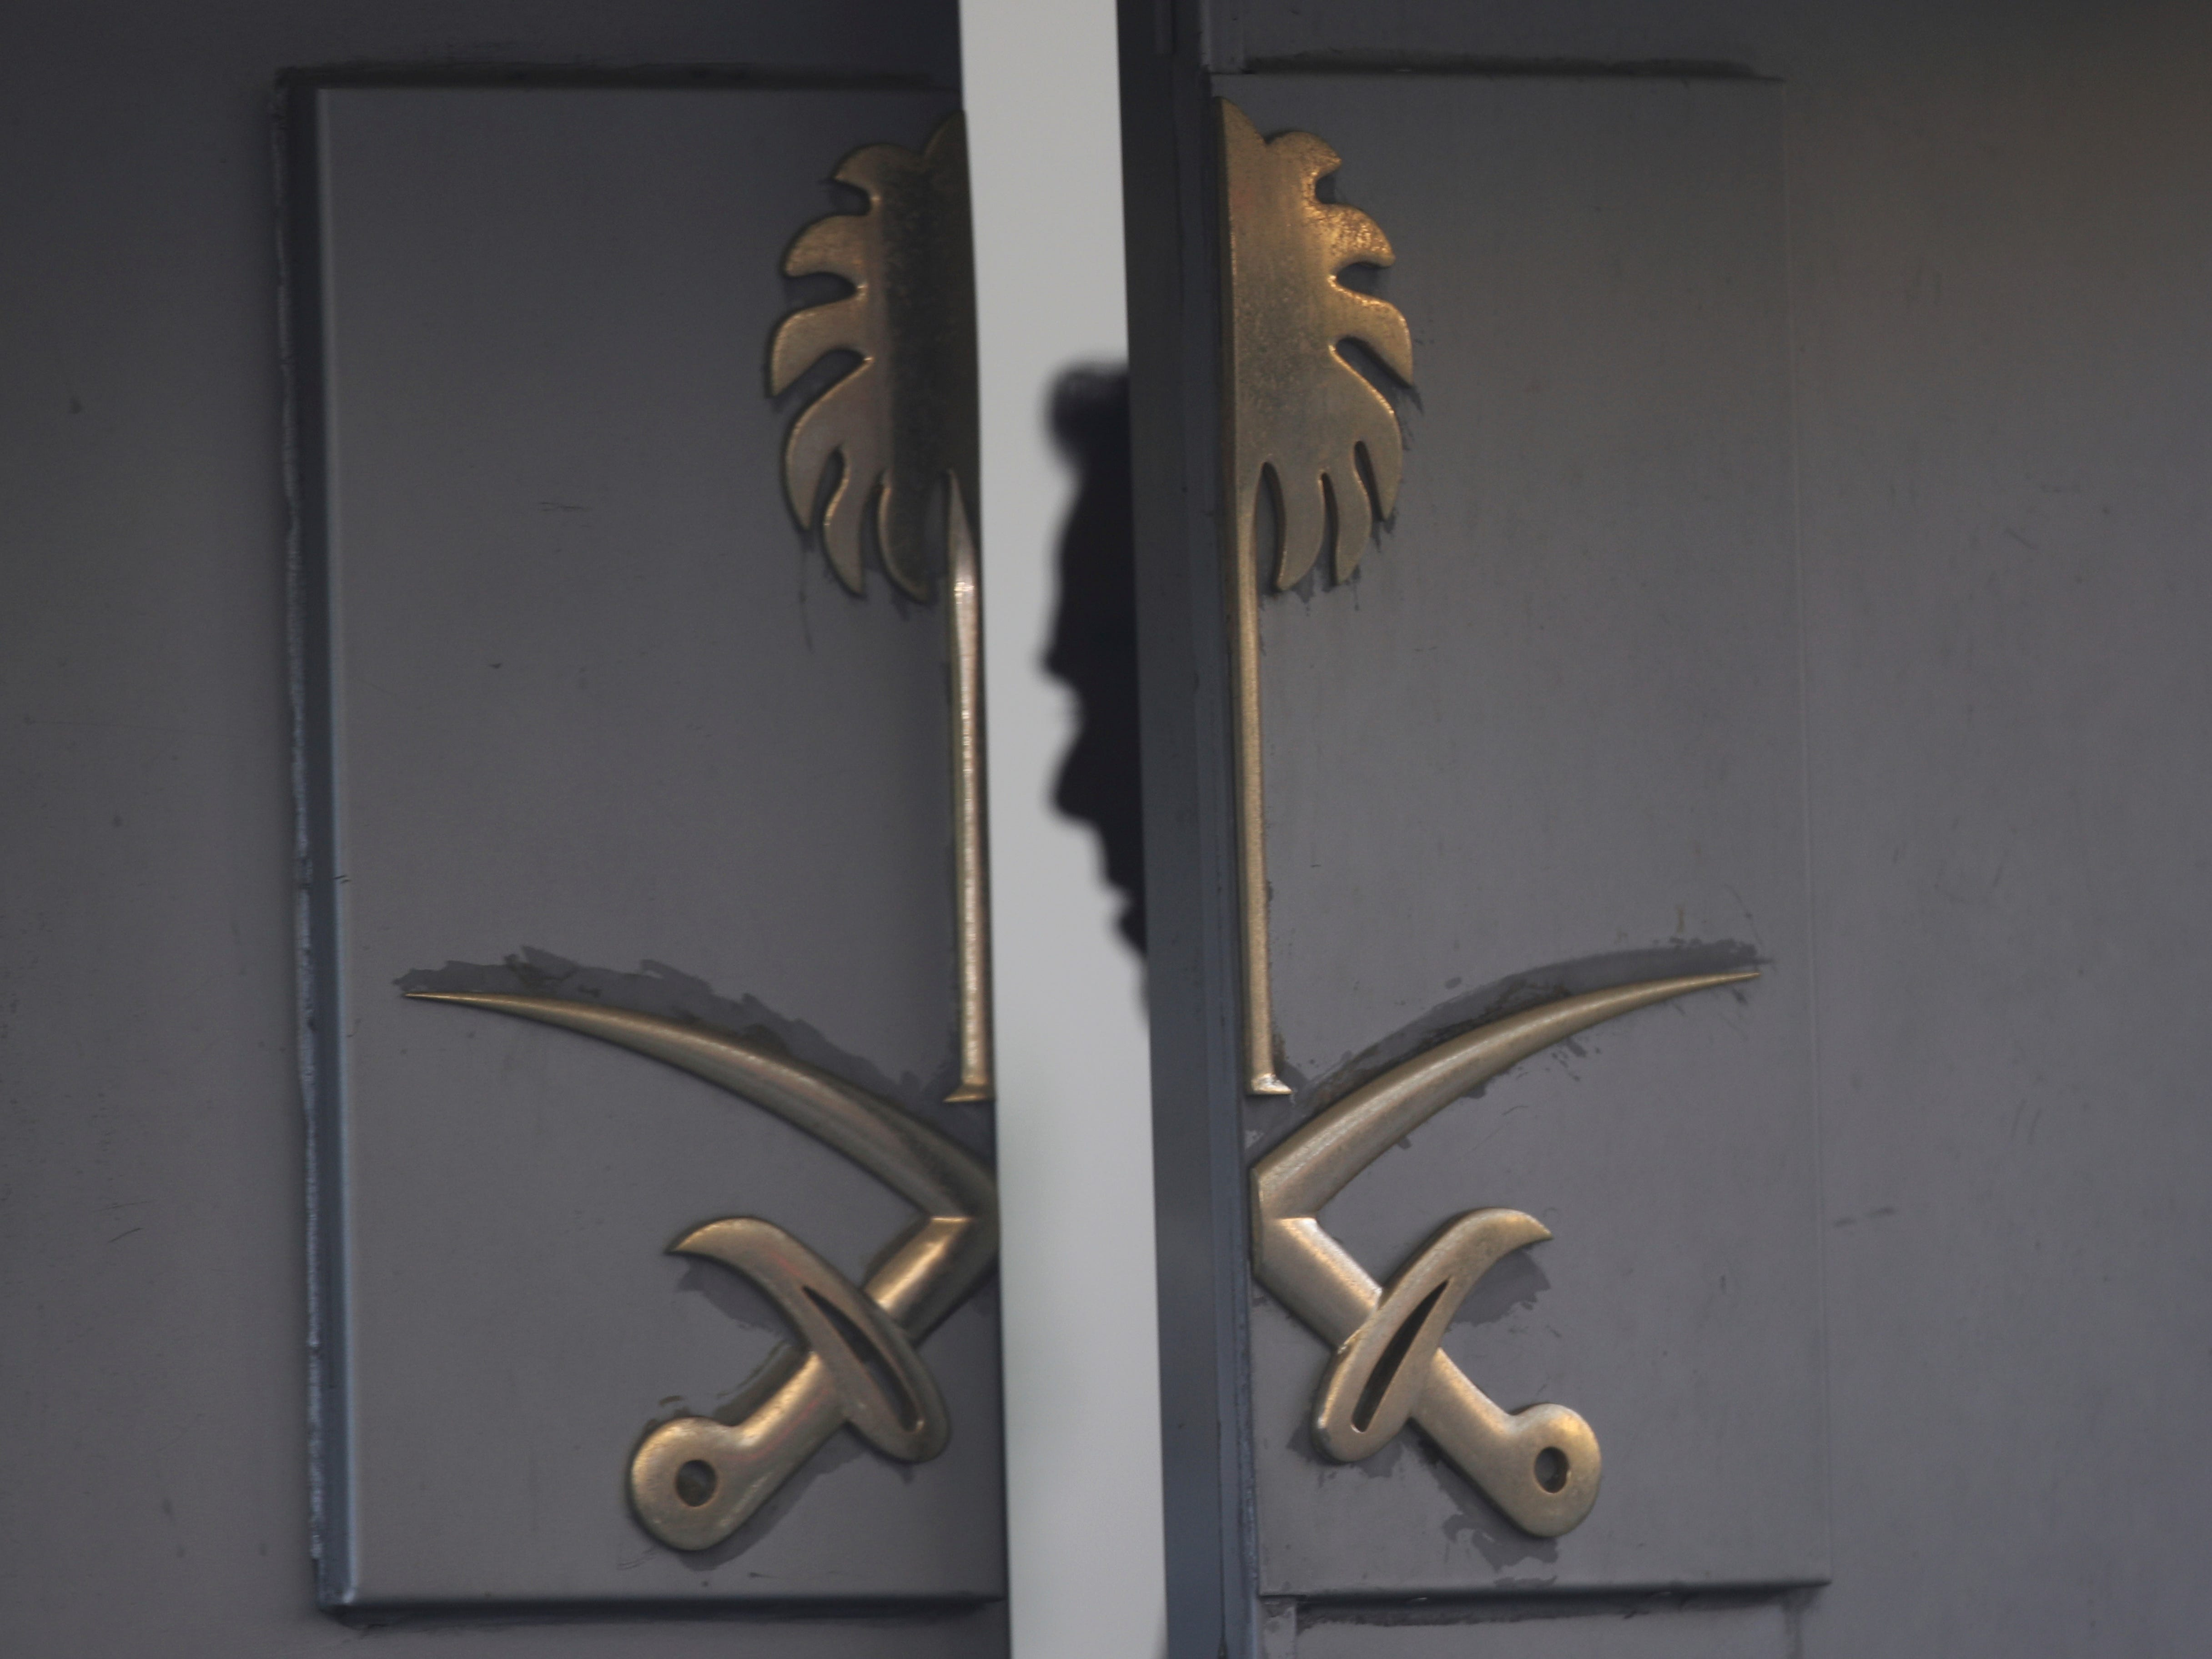 A security member is seen inside the entrance of the Saudi Arabia's Consulate in Istanbul, Tuesday, Oct. 16, 2018. A Turkish forensics teams finished a search for evidence inside the Saudi Arabia Consulate in Istanbul early Tuesday morning, over the disappearance and alleged slaying of Saudi writer Jamal Khashoggi.